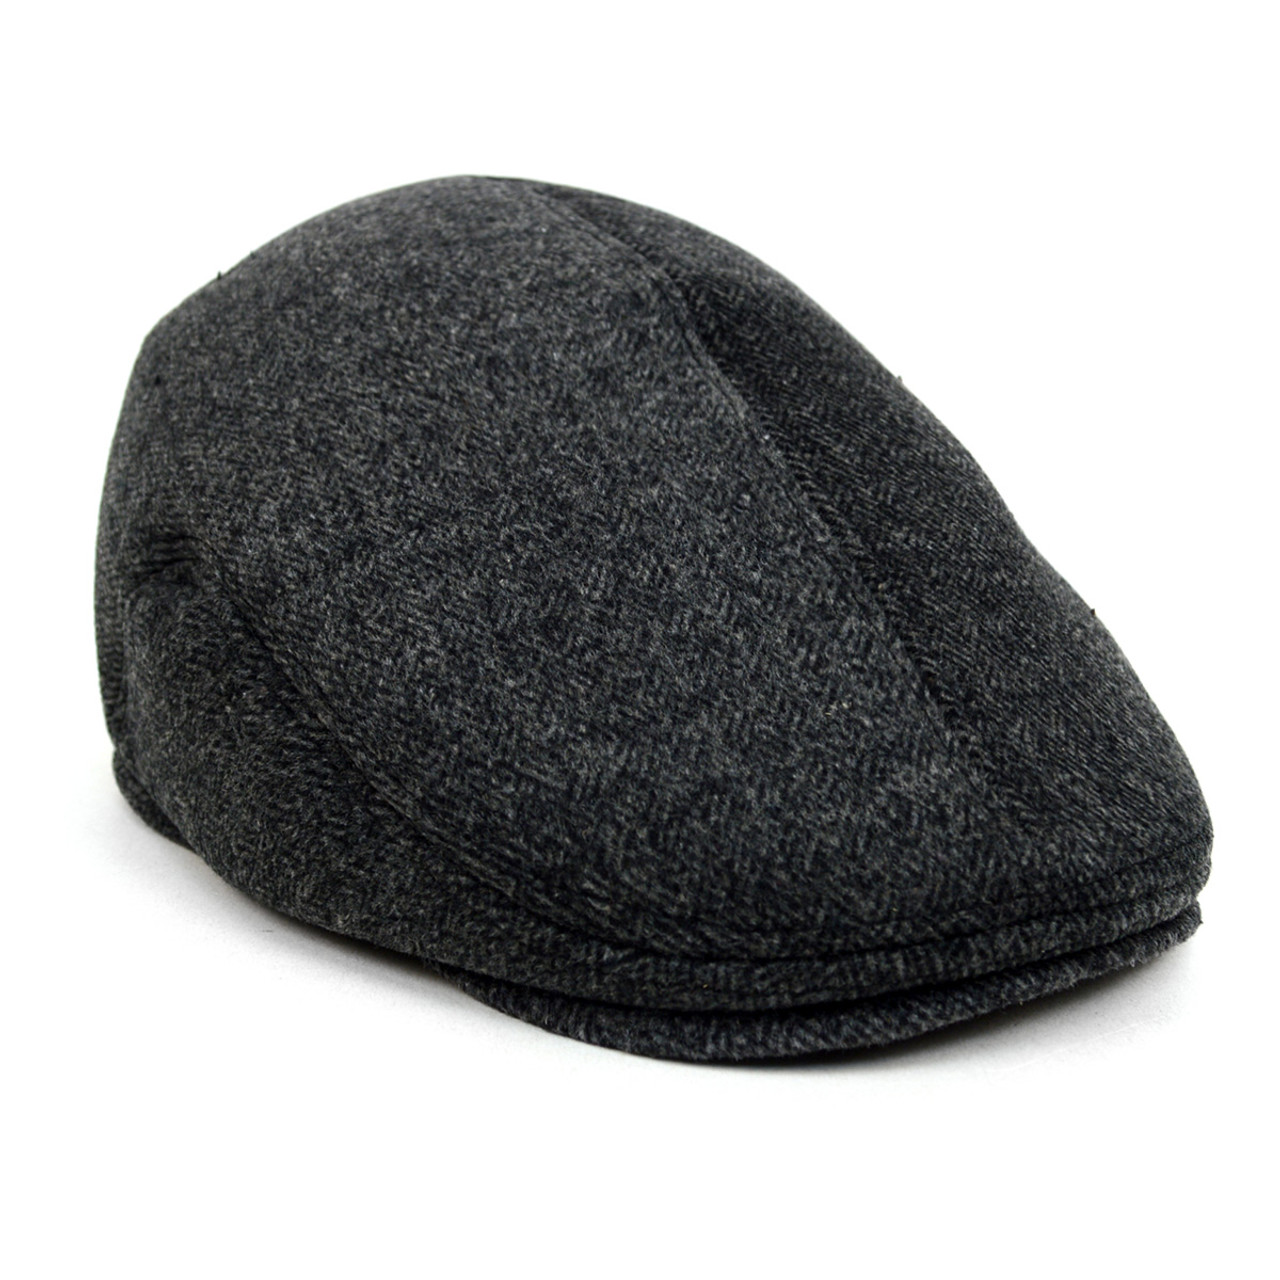 af637a6b35f605 Fall/Winter Charcoal Ivy Hat with Ear Flaps - H1805012